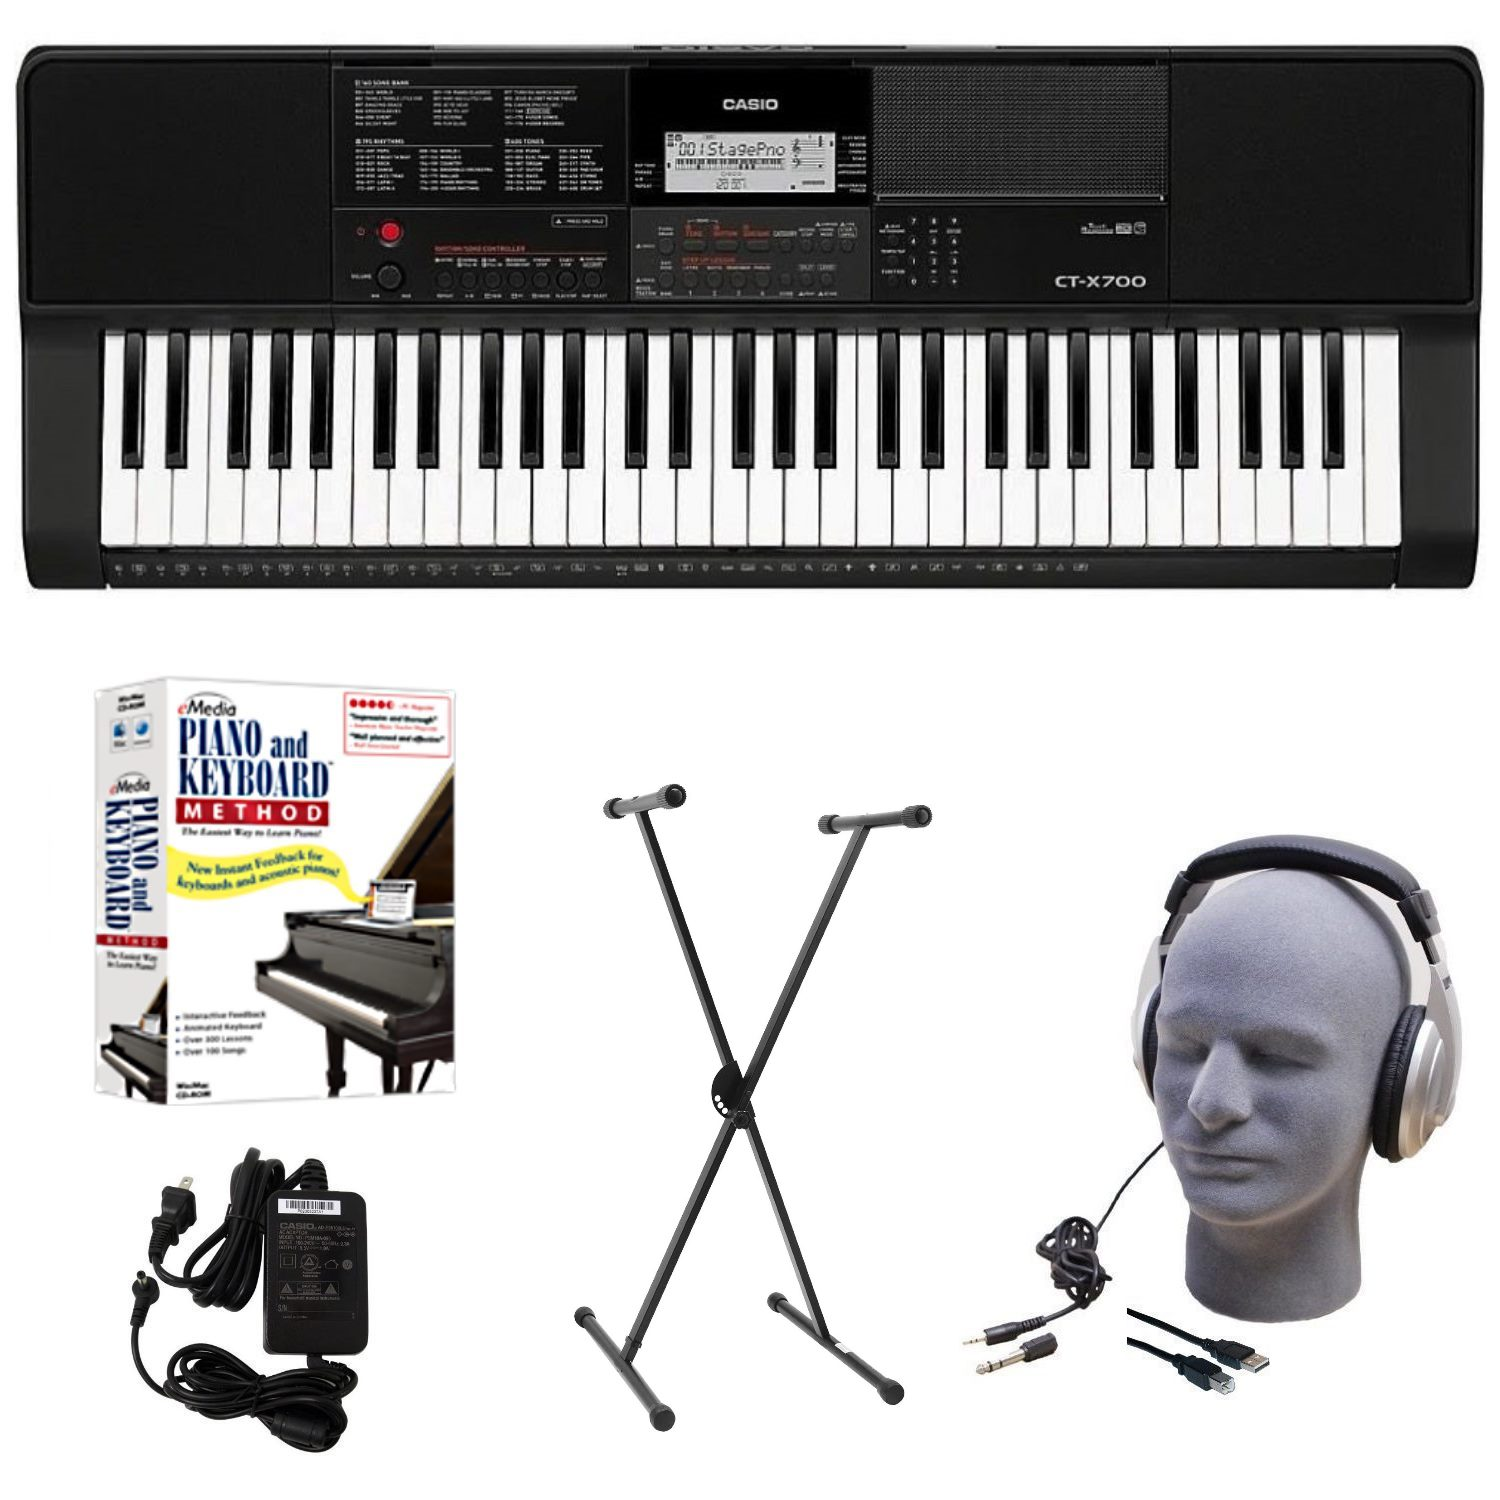 Casio CT-X700 EDP Educational Keyboard Pack with Power Supply, Stand, Headphones, USB Cable, and Instructional Software